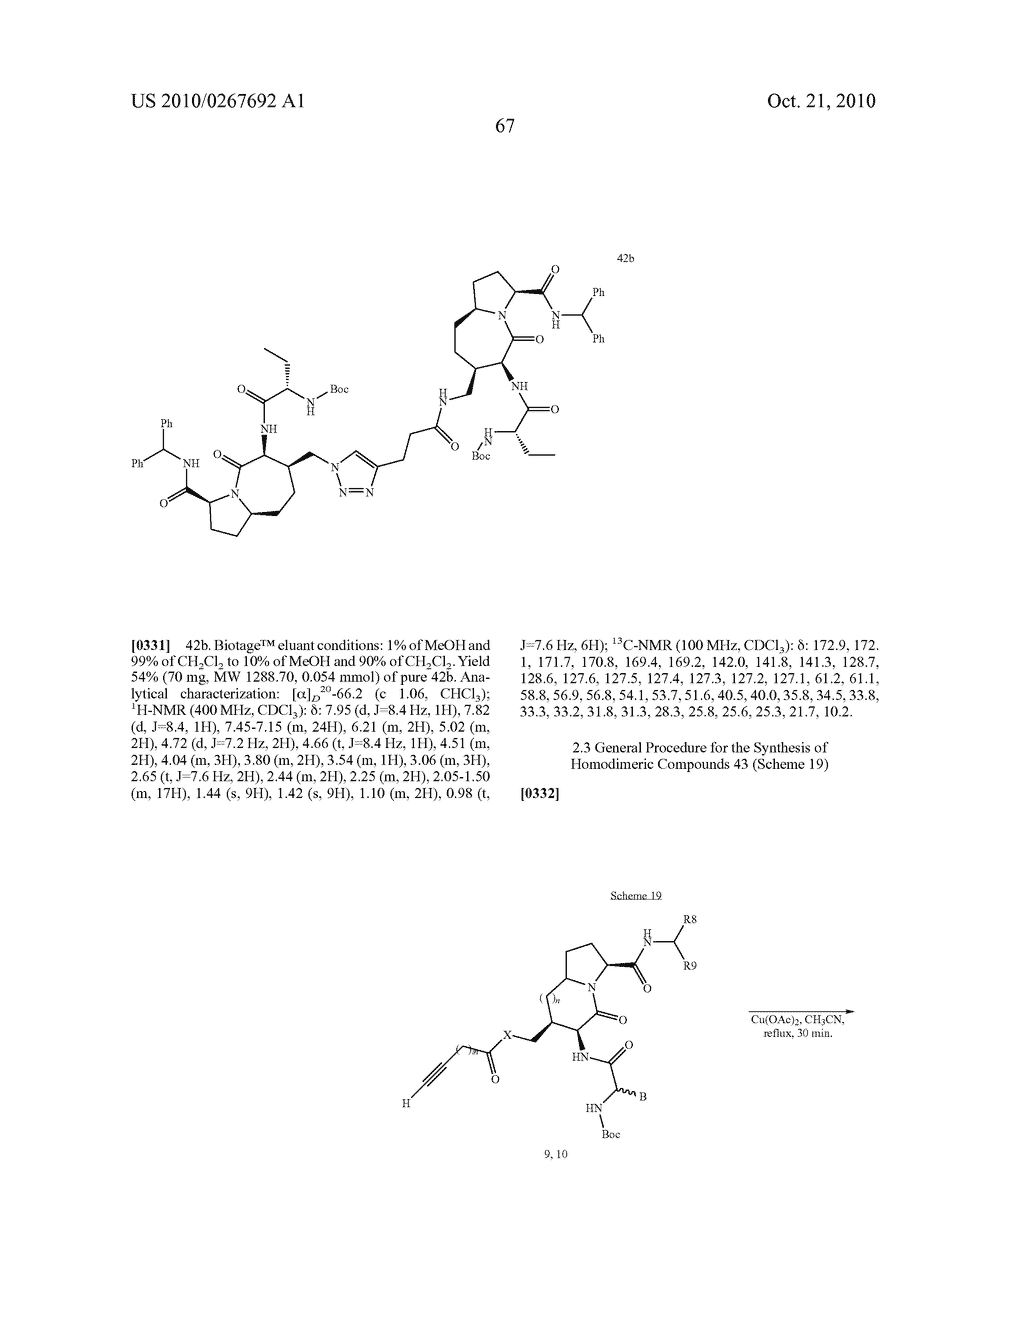 SMAC MIMETIC COMPOUNDS AS APOPTOSIS INDUCERS - diagram, schematic, and image 68